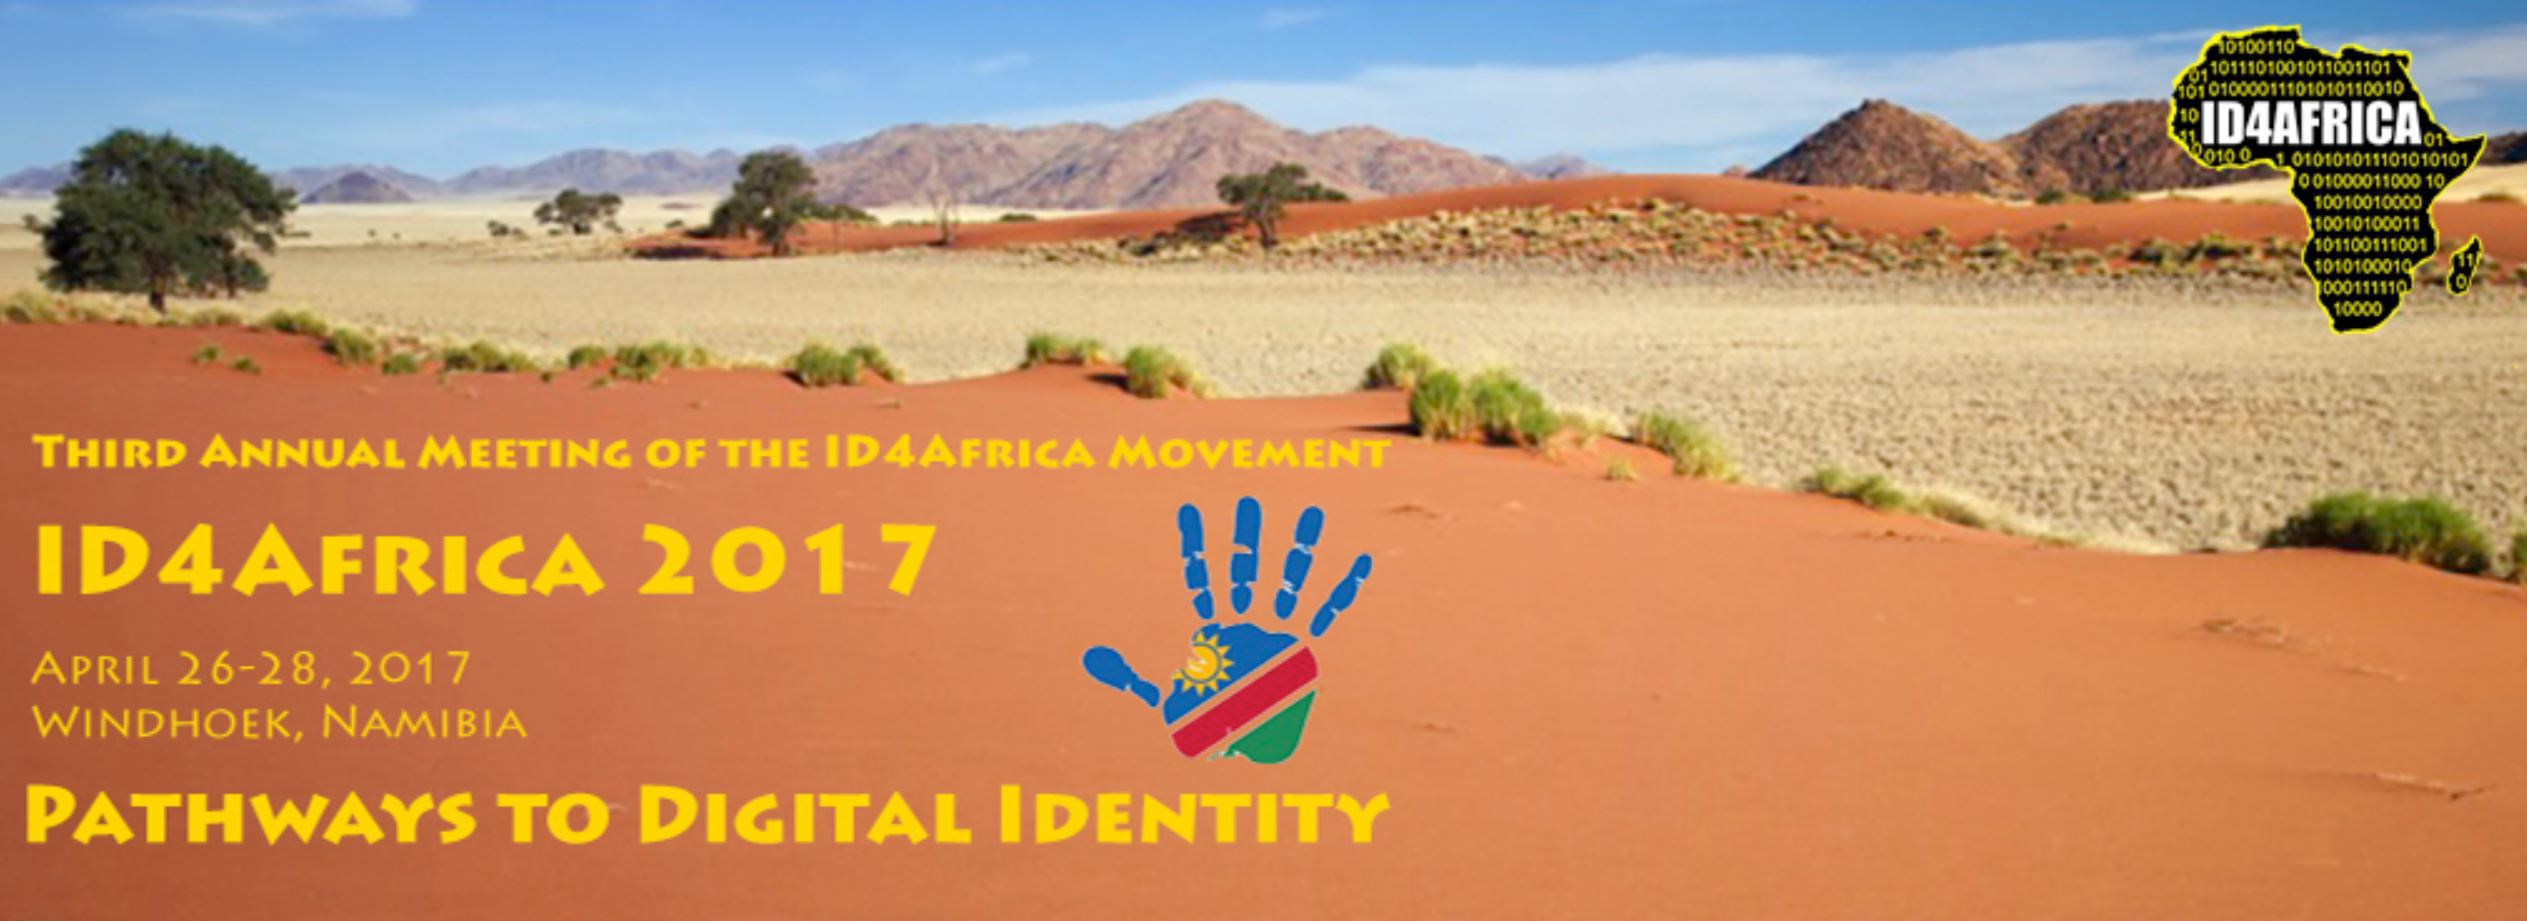 3rd Government Forum on Electronic Identity in Africa, Windhoek, Namibia